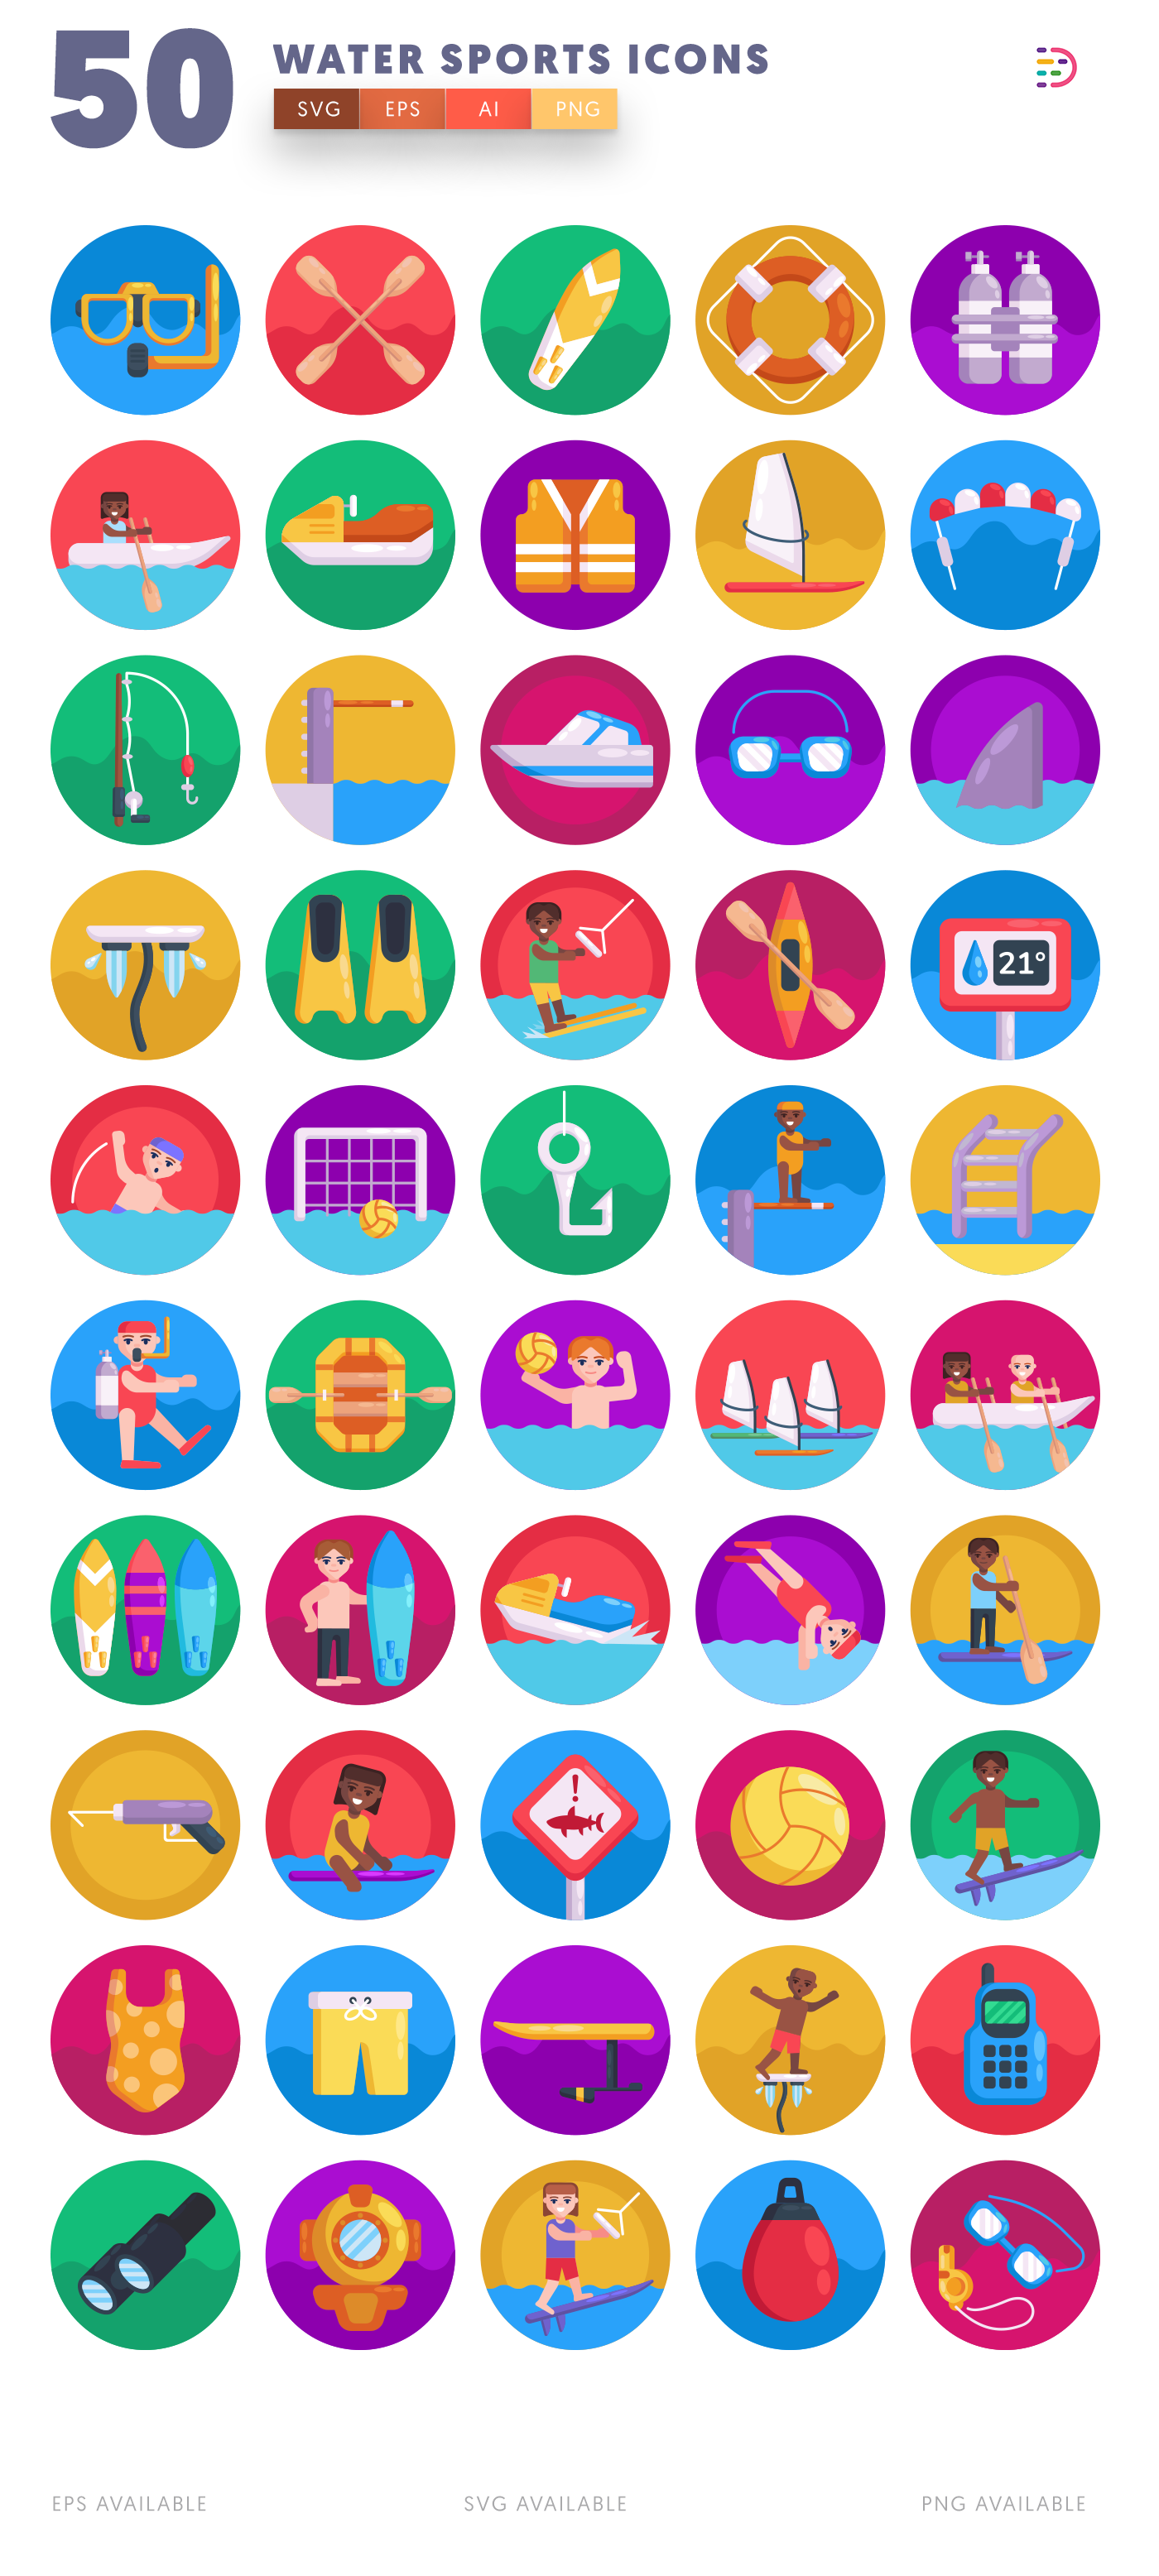 Water Sports icon pack